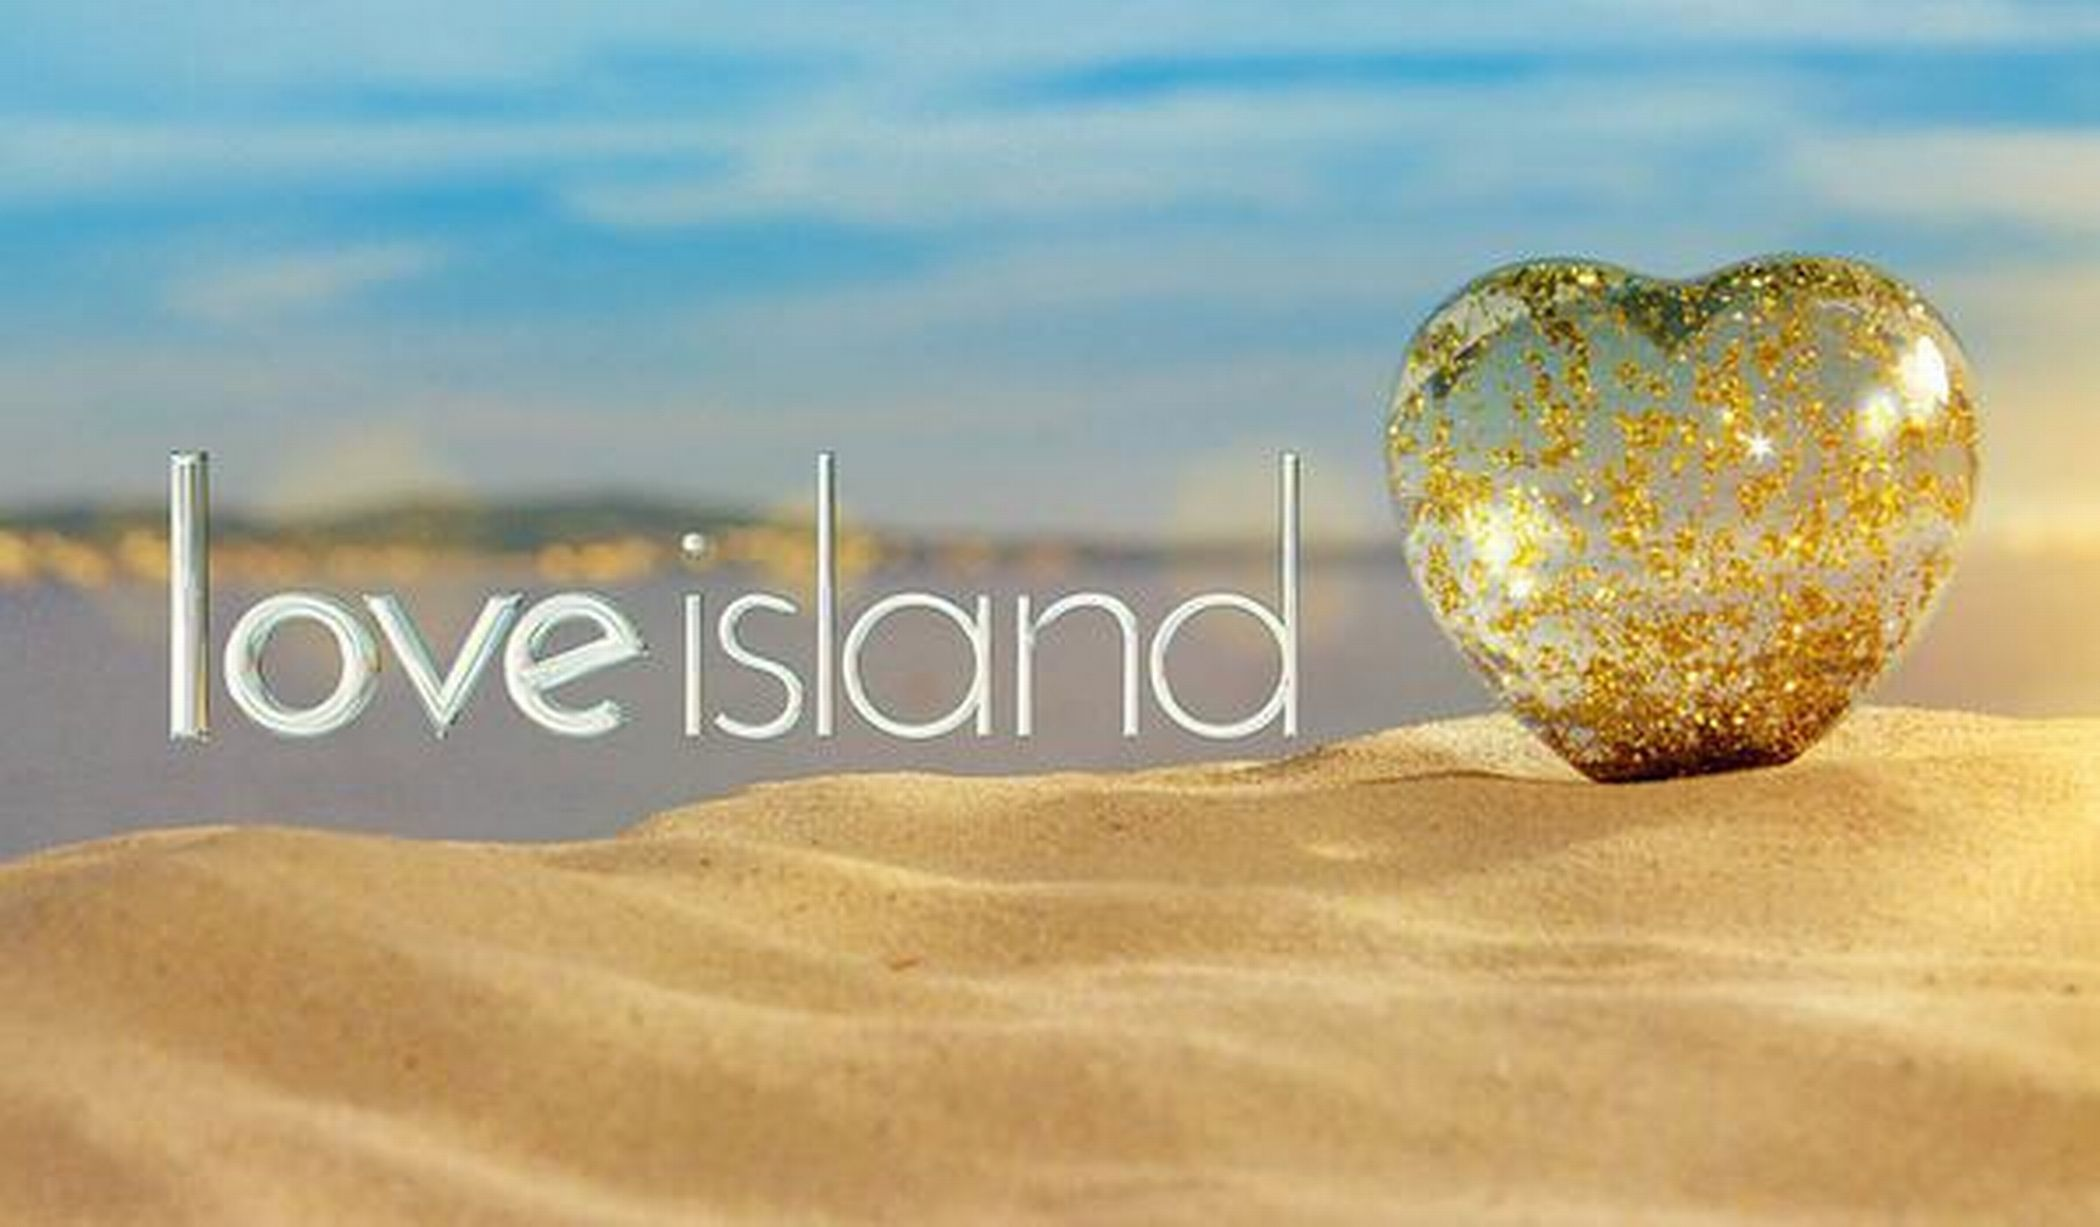 The viral video has resurfaced now that Jess has entered the maelstrom of modern dating that is ITV2's Love Island.